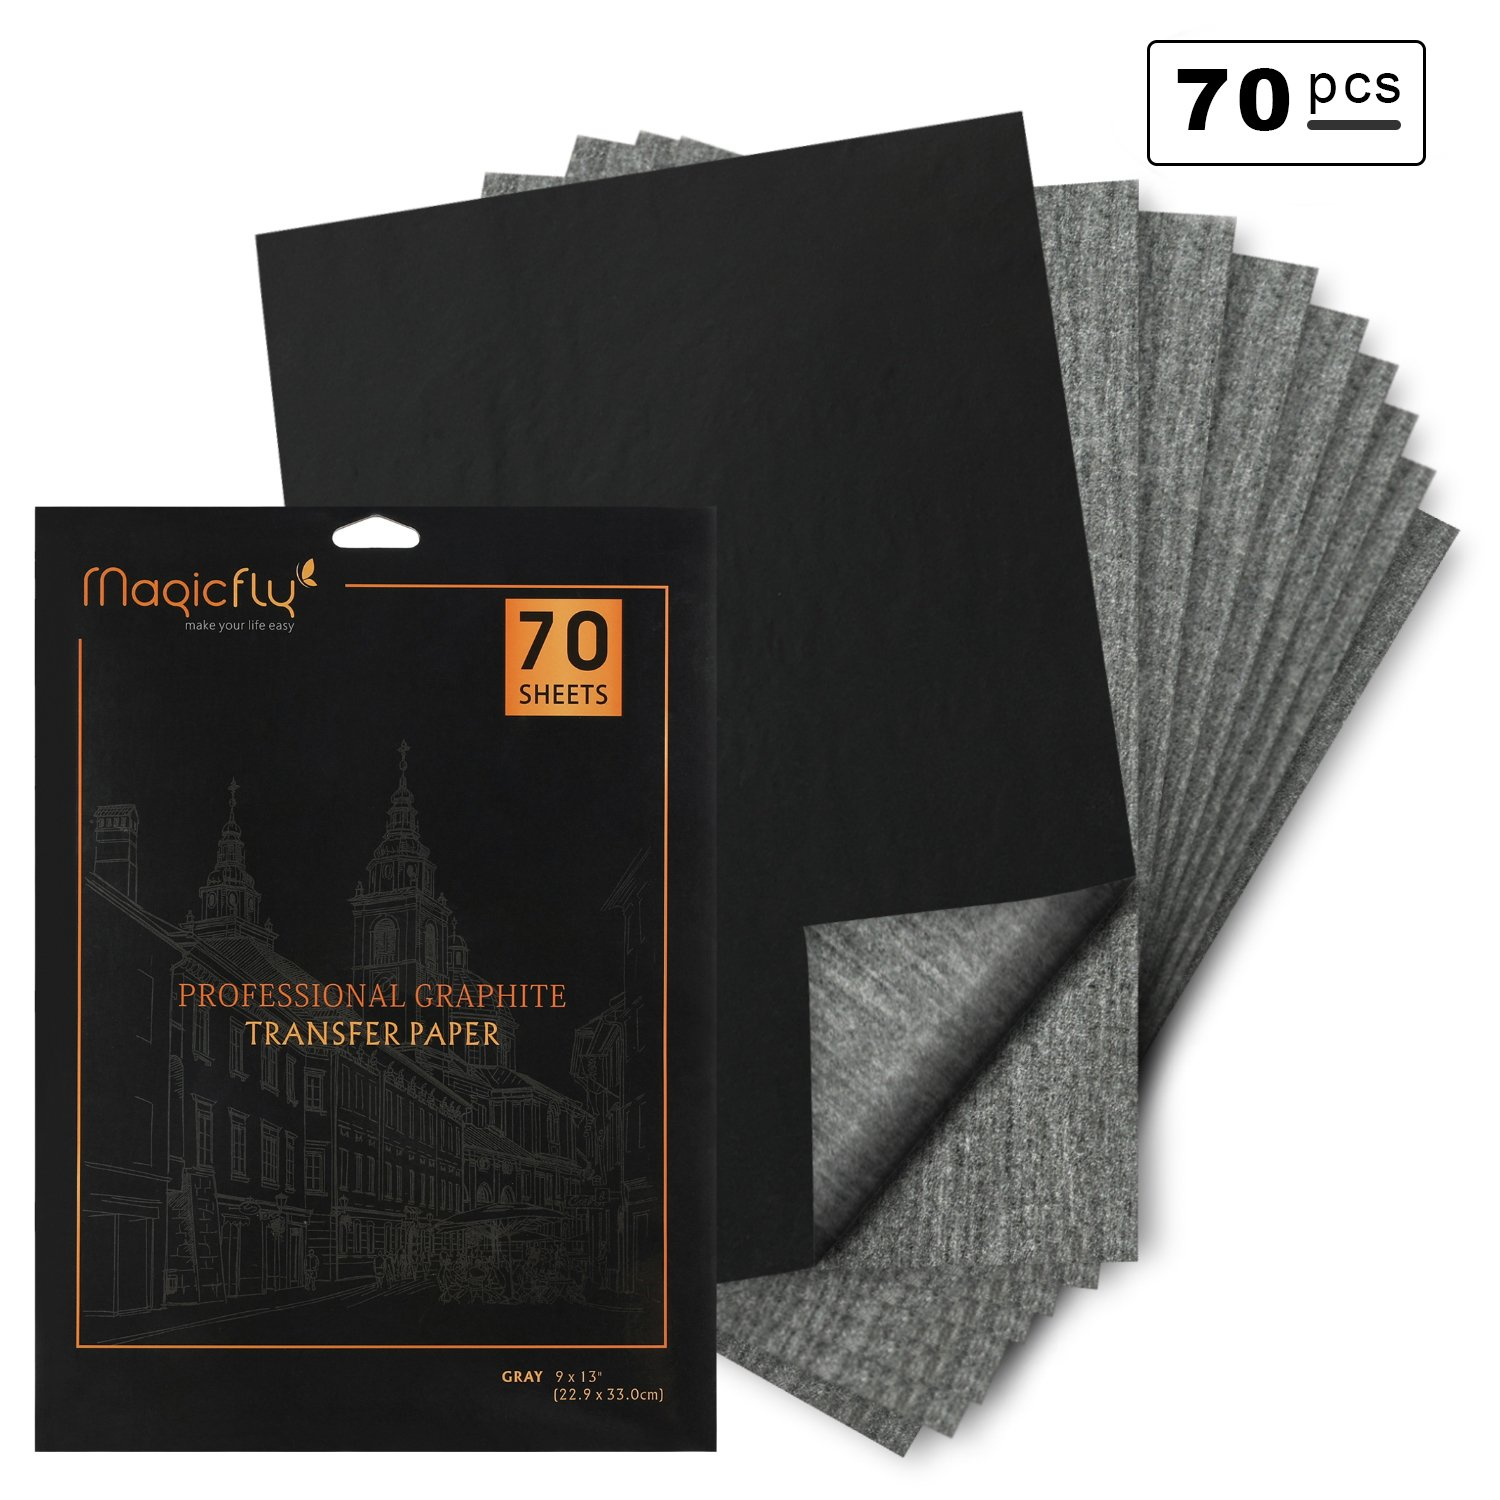 carbon paper magicfly 70 sheets 9 x 13 graphite transfer paper